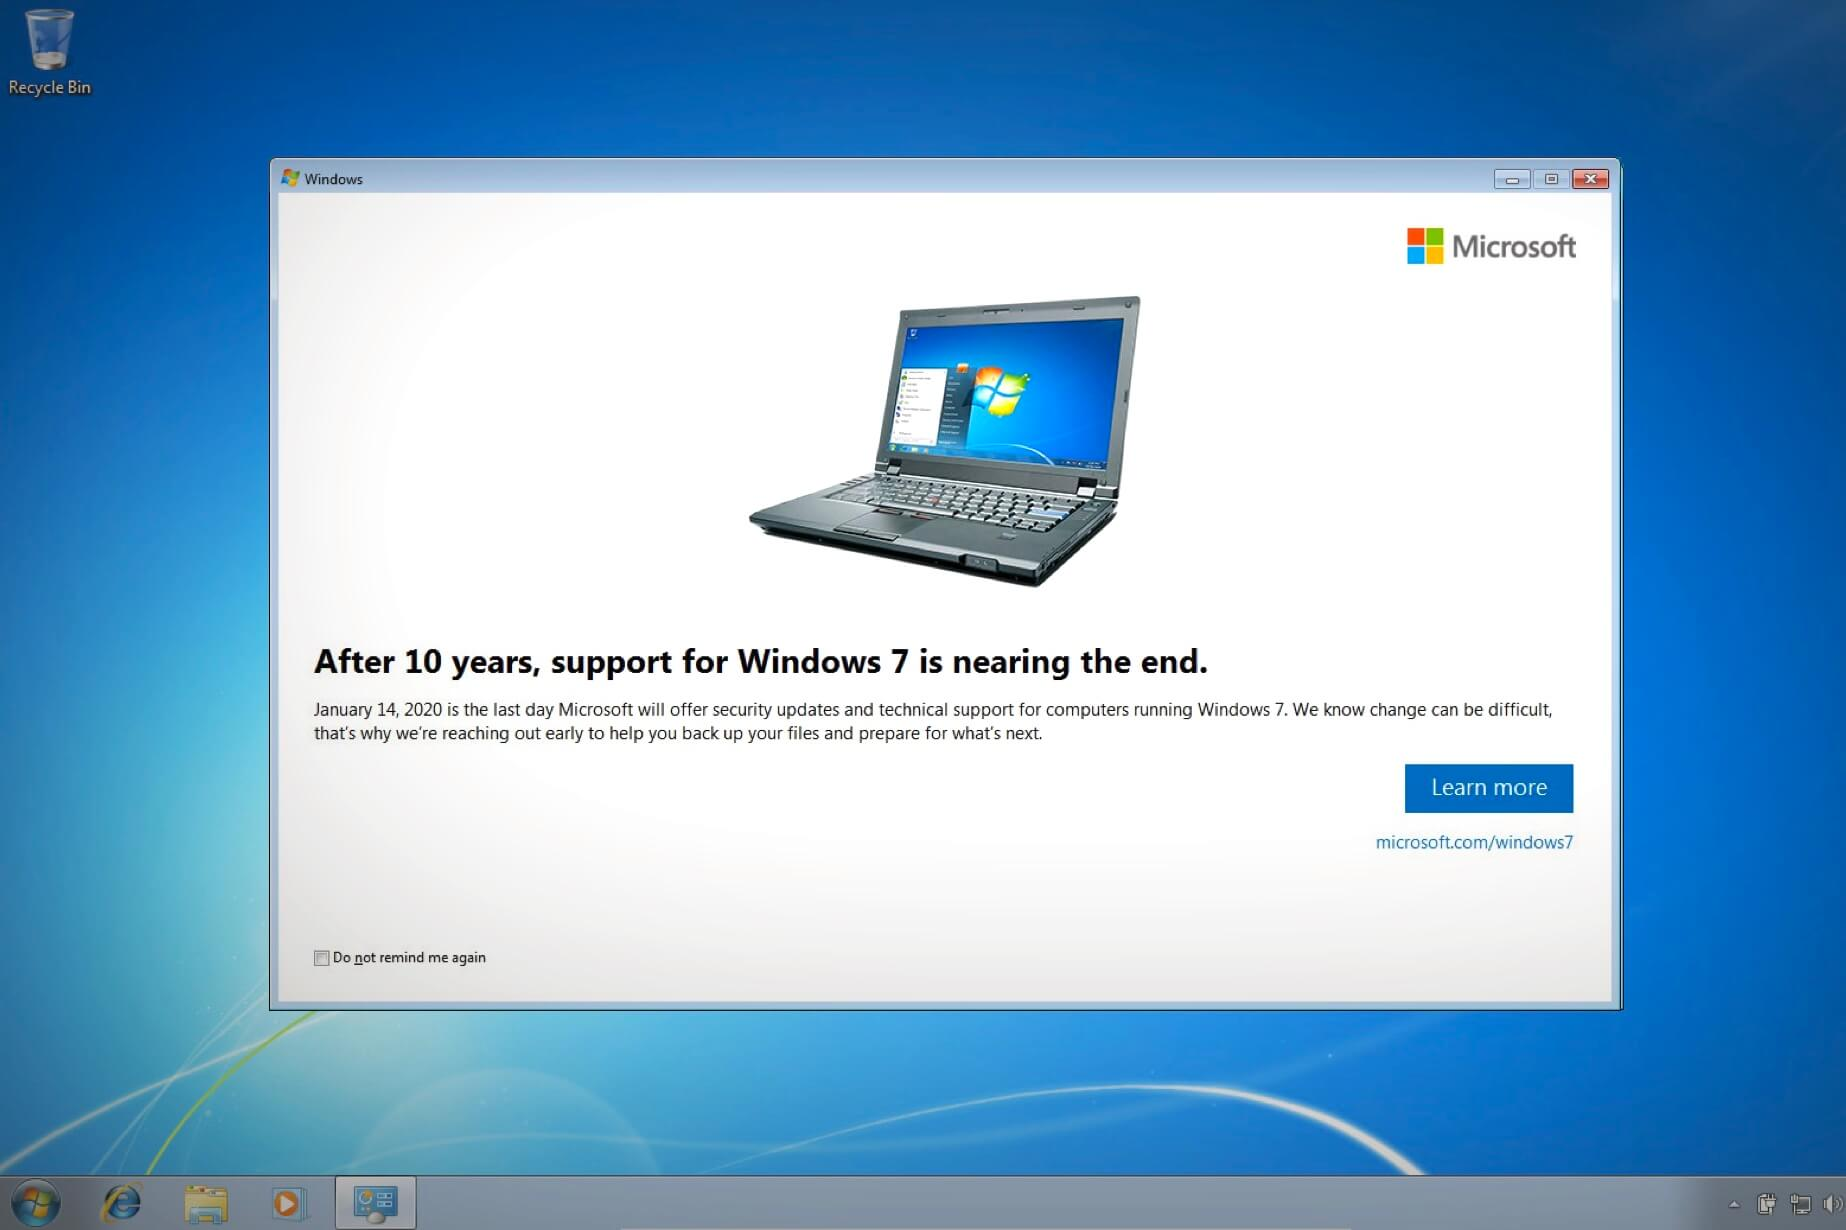 Microsoft rolls out Windows 7 end of support